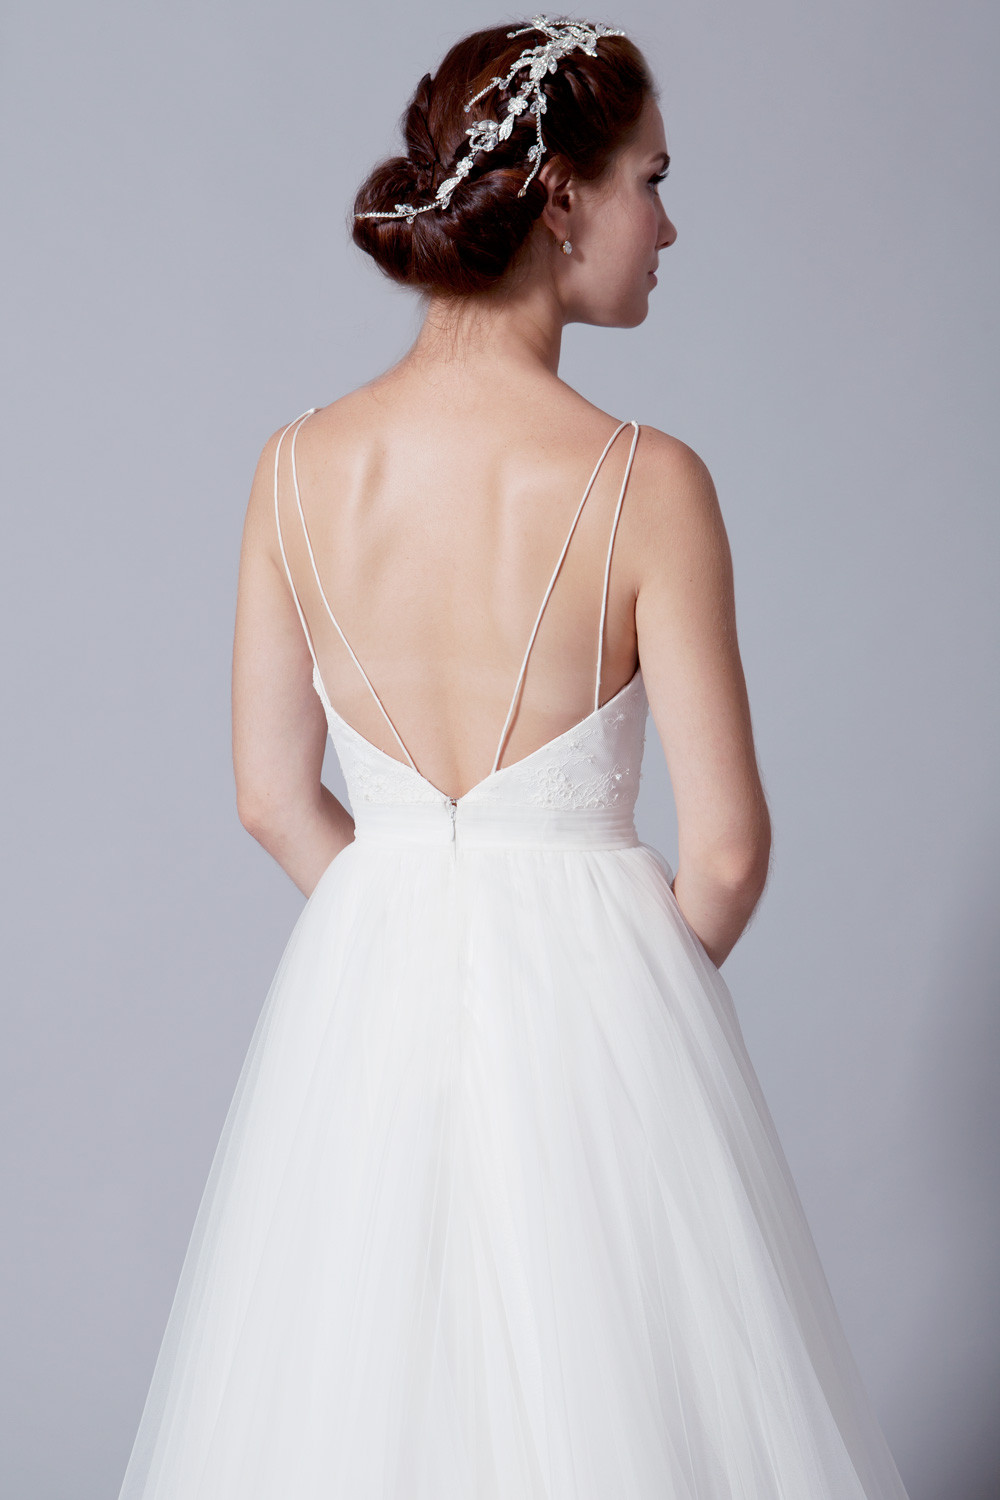 Neck soft tulle simple lace wedding dress (50126)